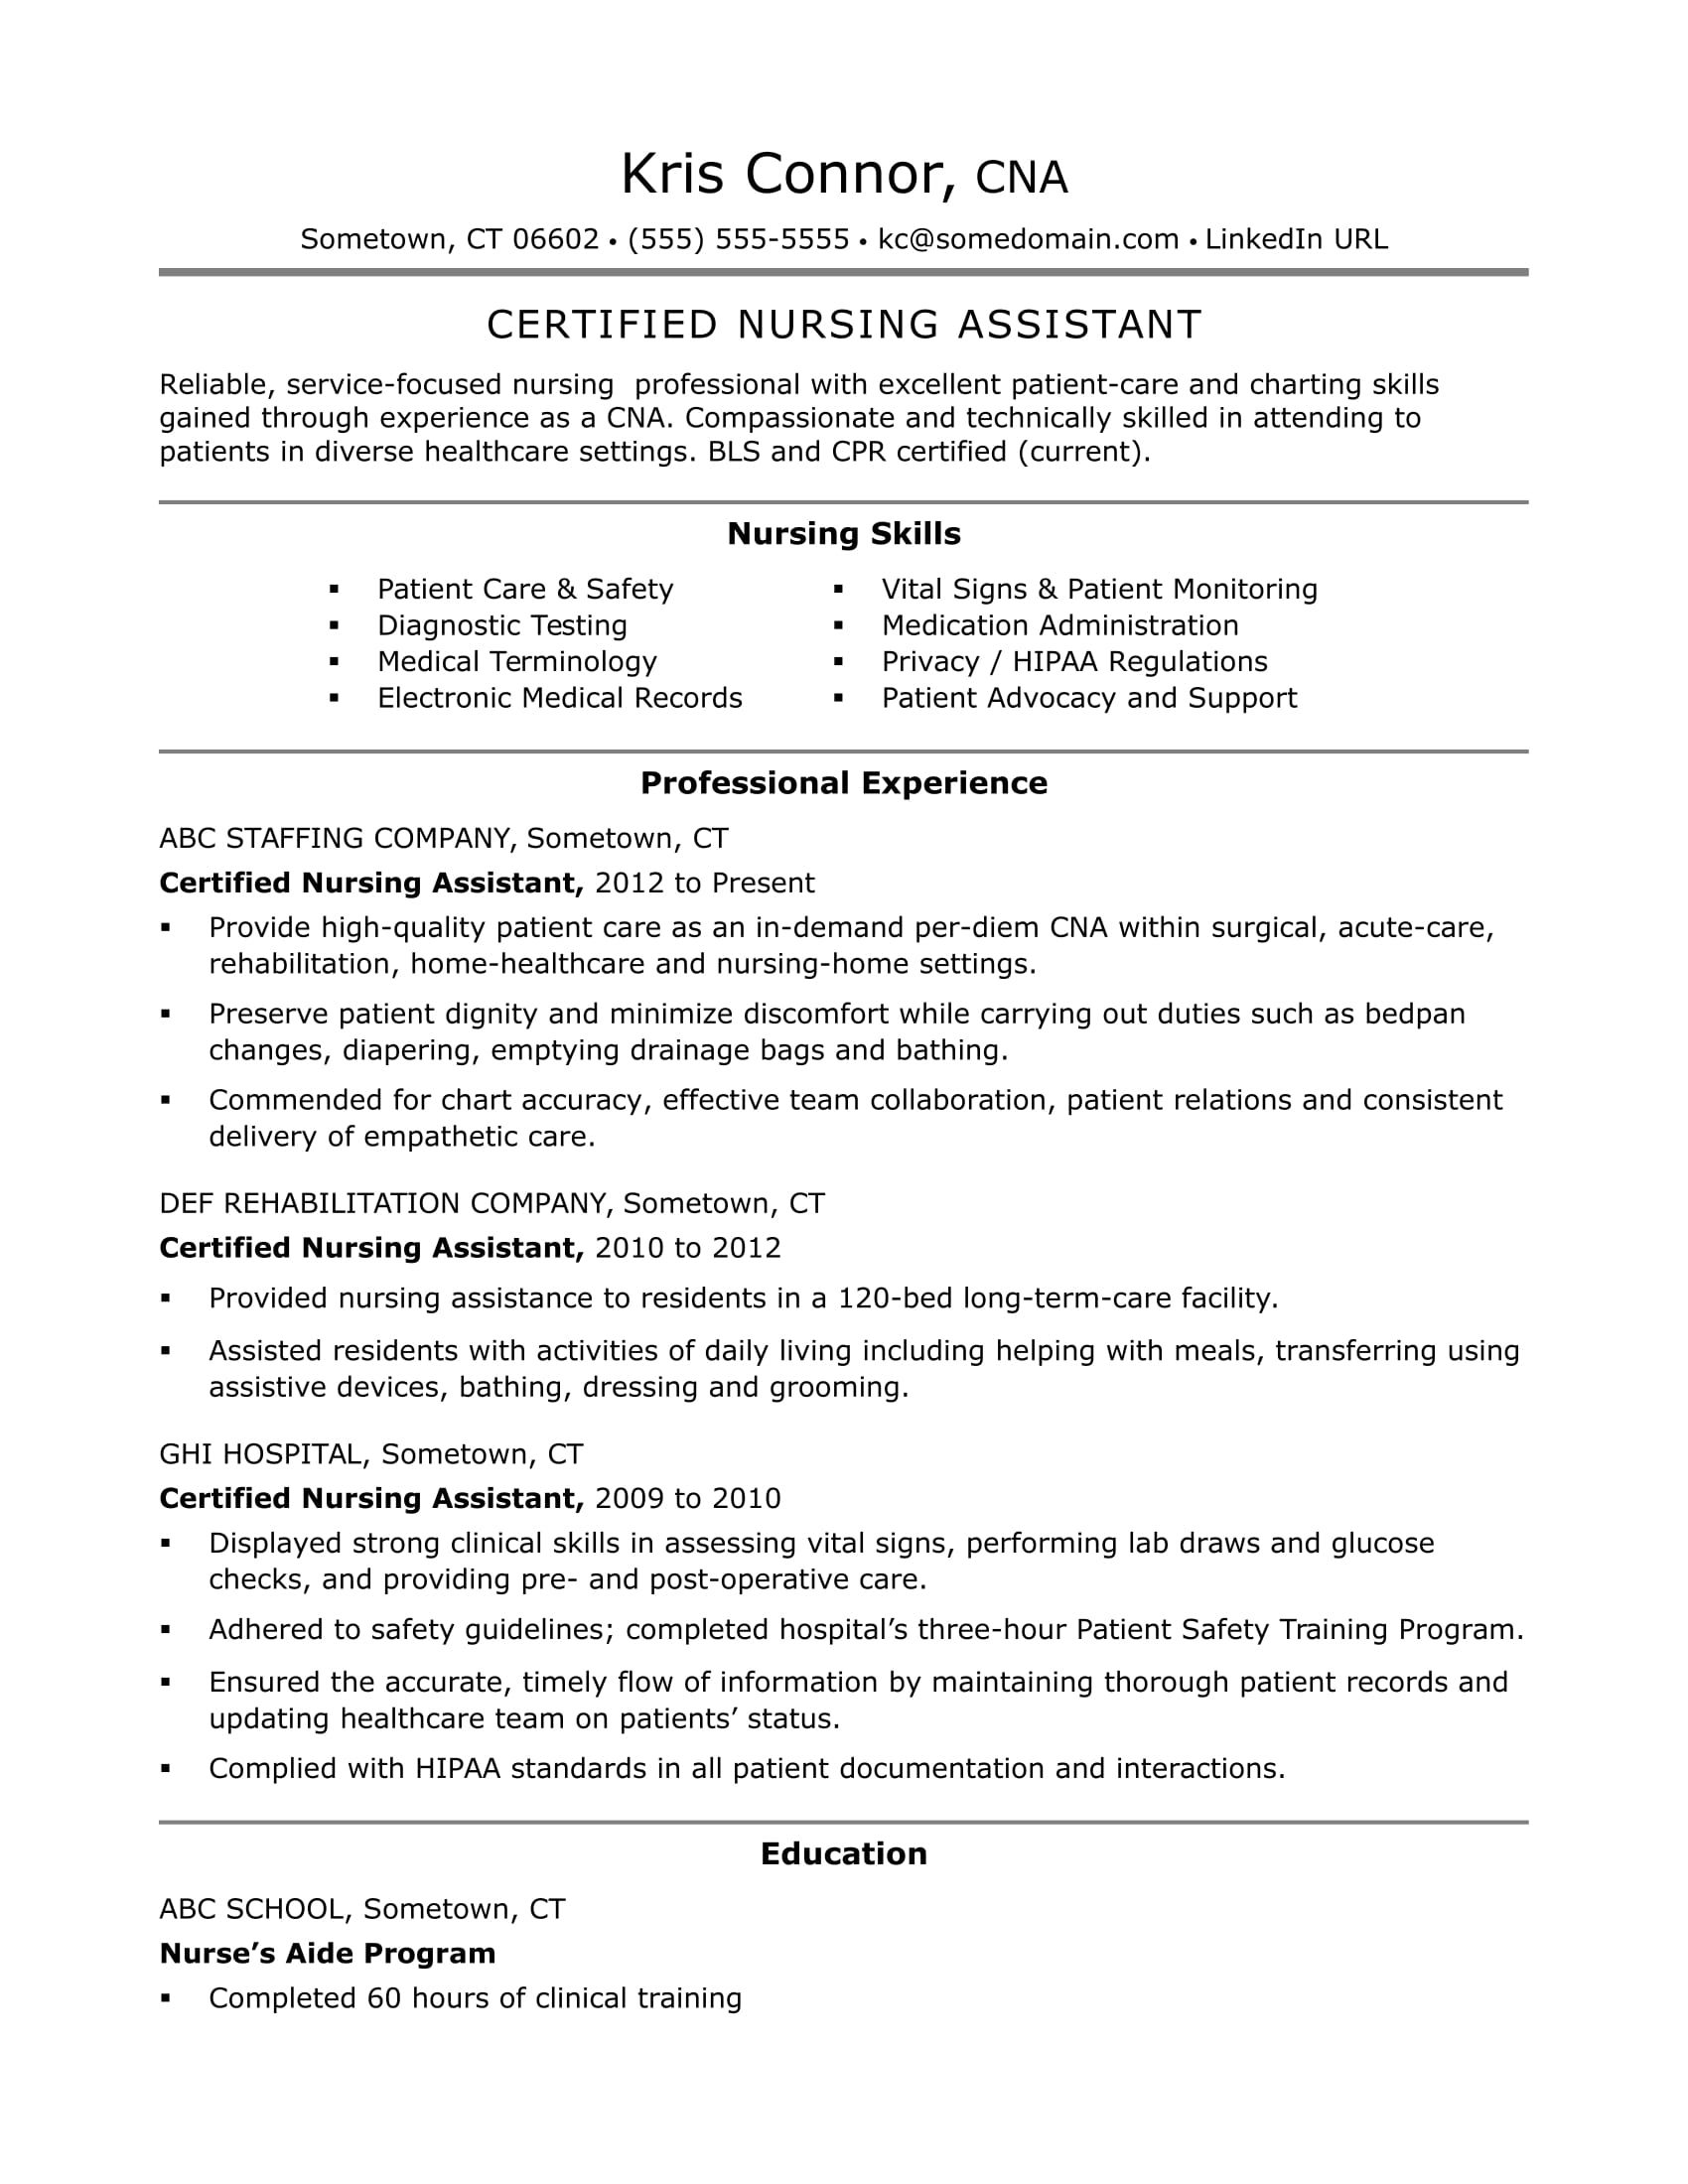 Awesome CNA Resume Example